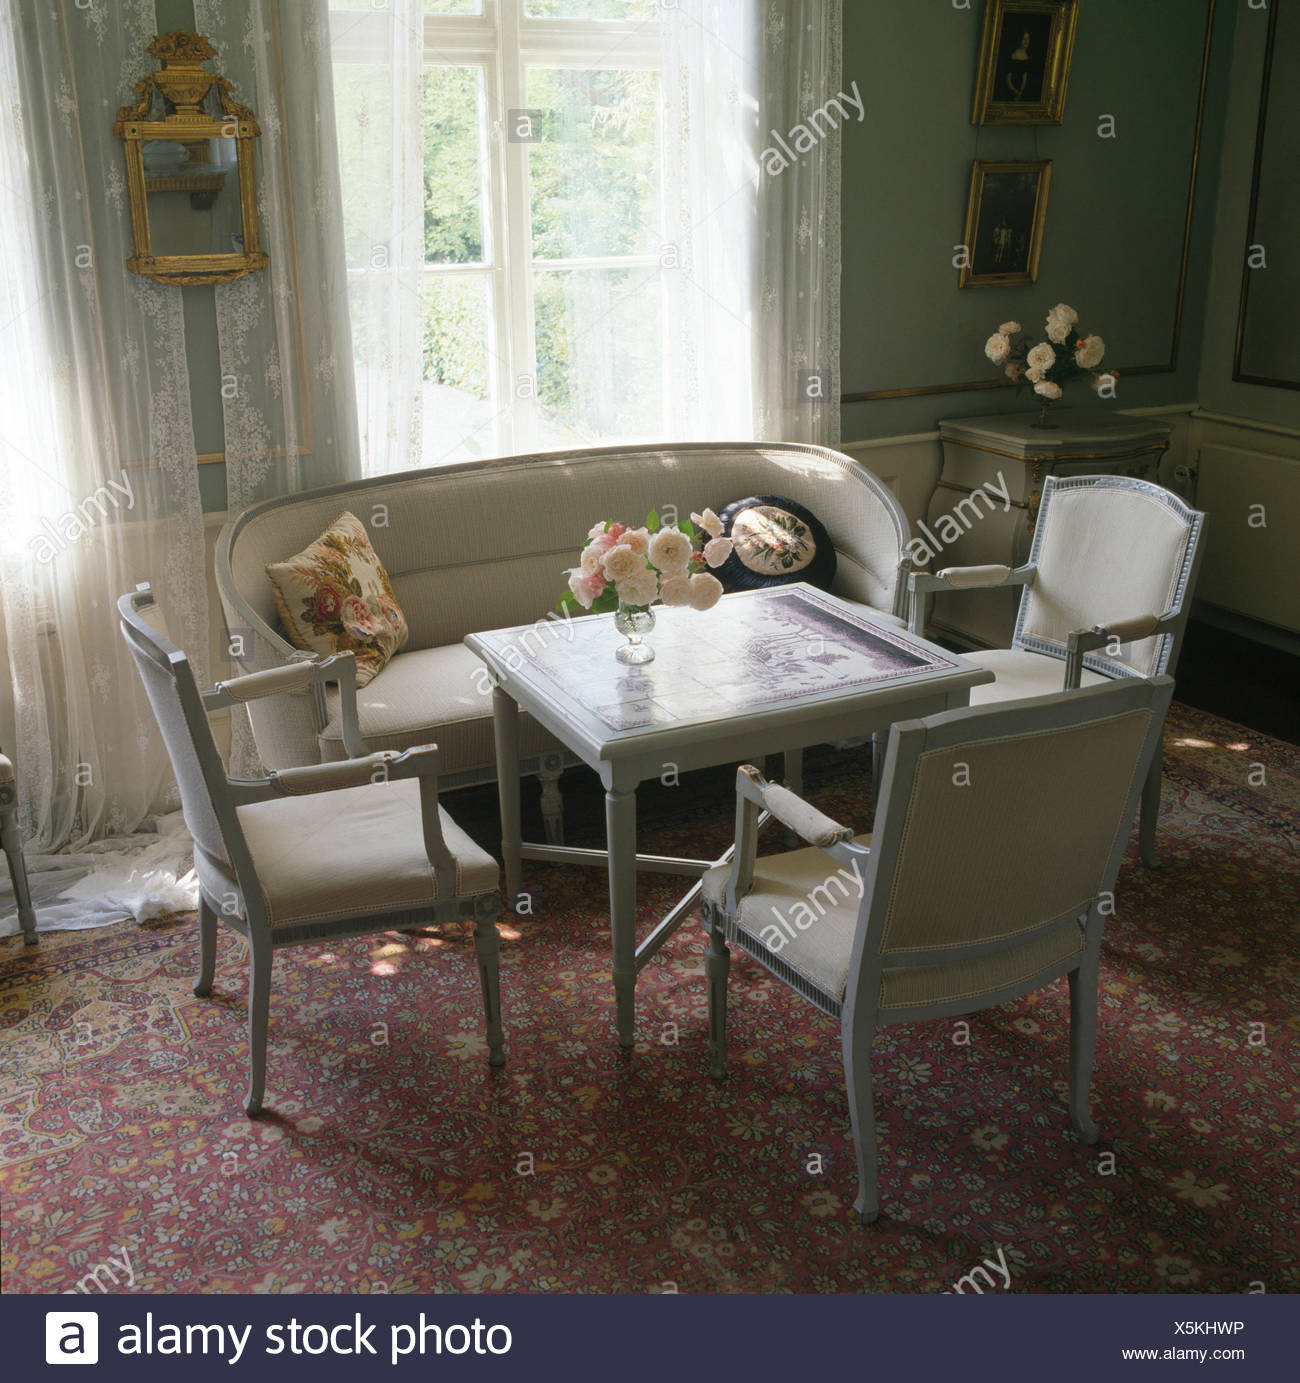 Gentil Grey Painted Chairs And Small Table In Swedish Dining Room